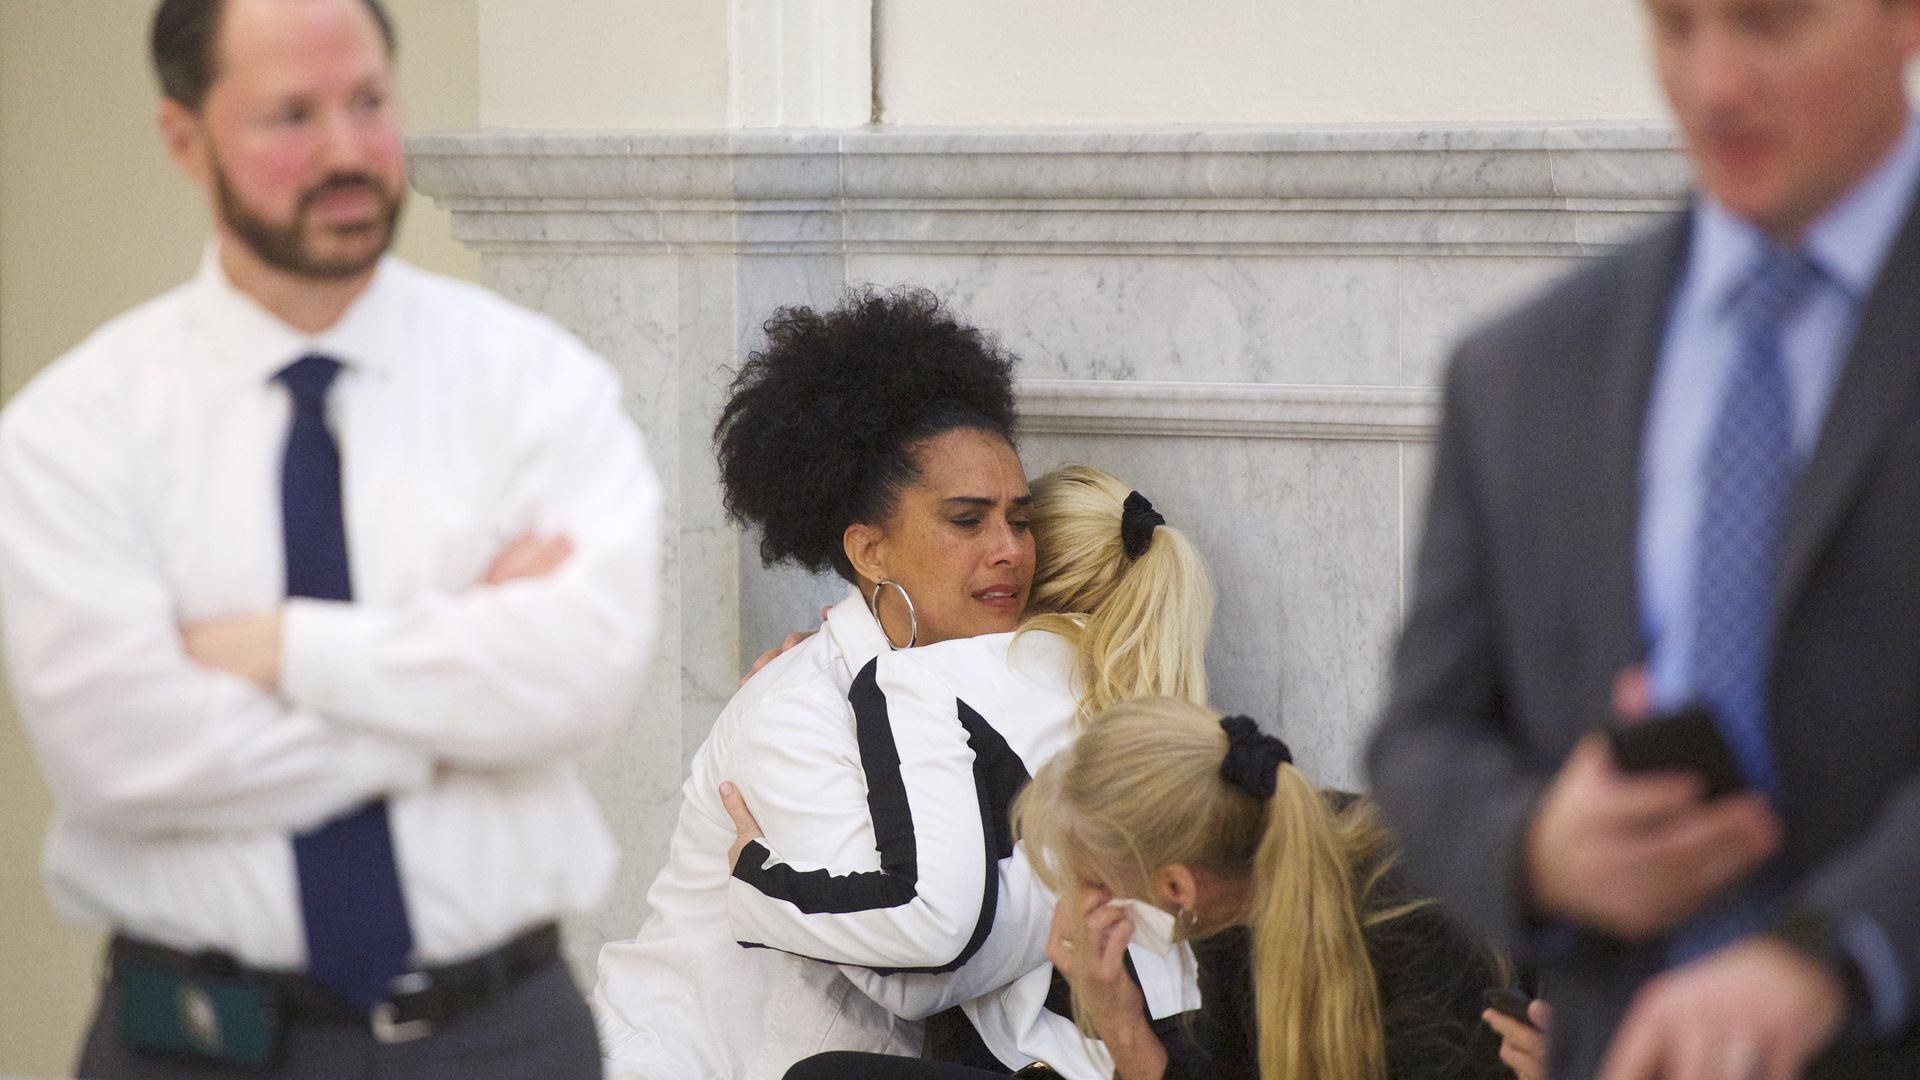 Bill Cosby accusers Lili Bernard and Caroline Heldman react after the guilty on all counts verdict